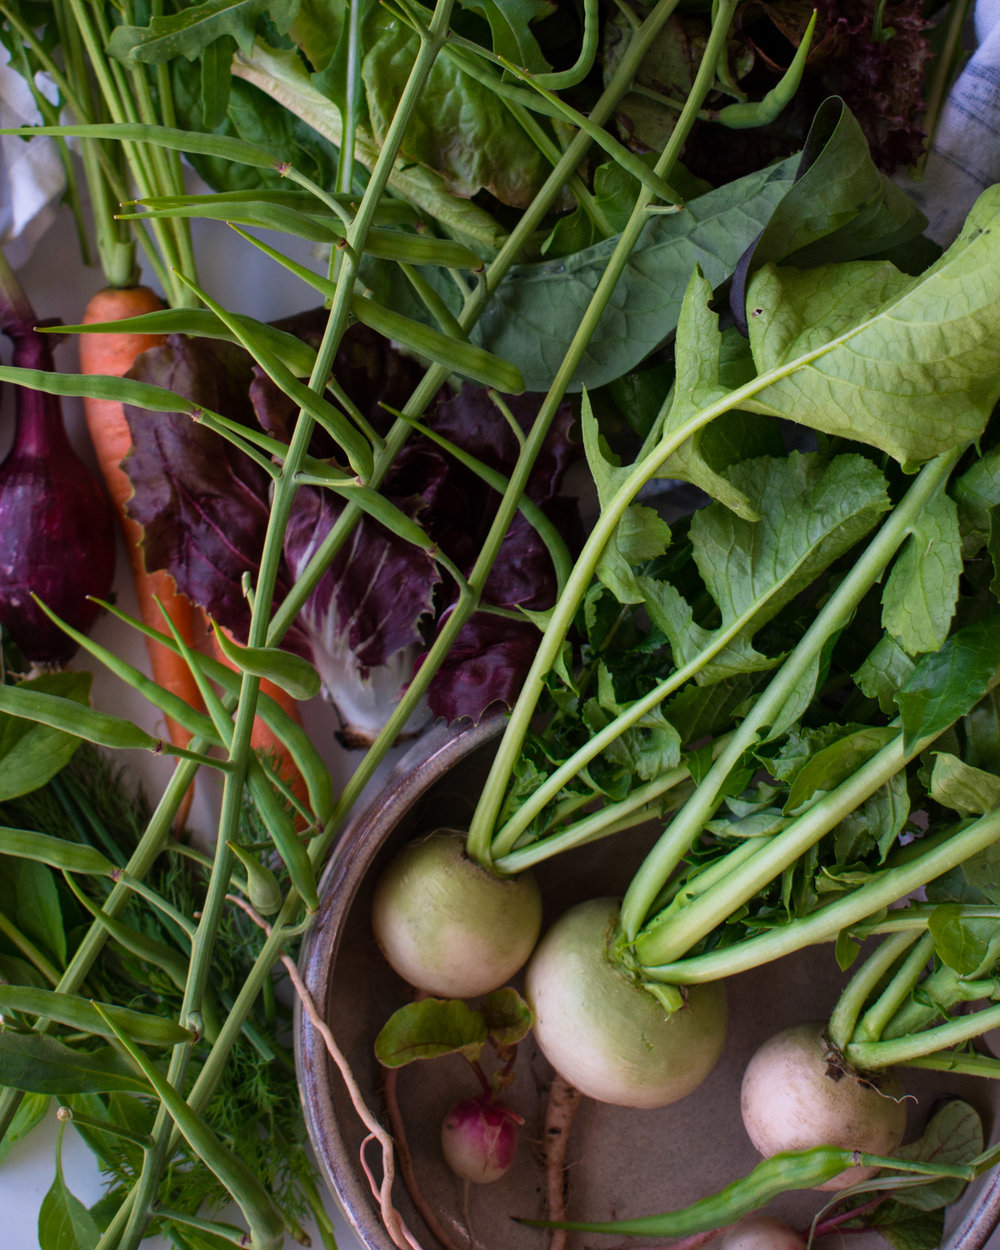 Radishes, herbs and greens.